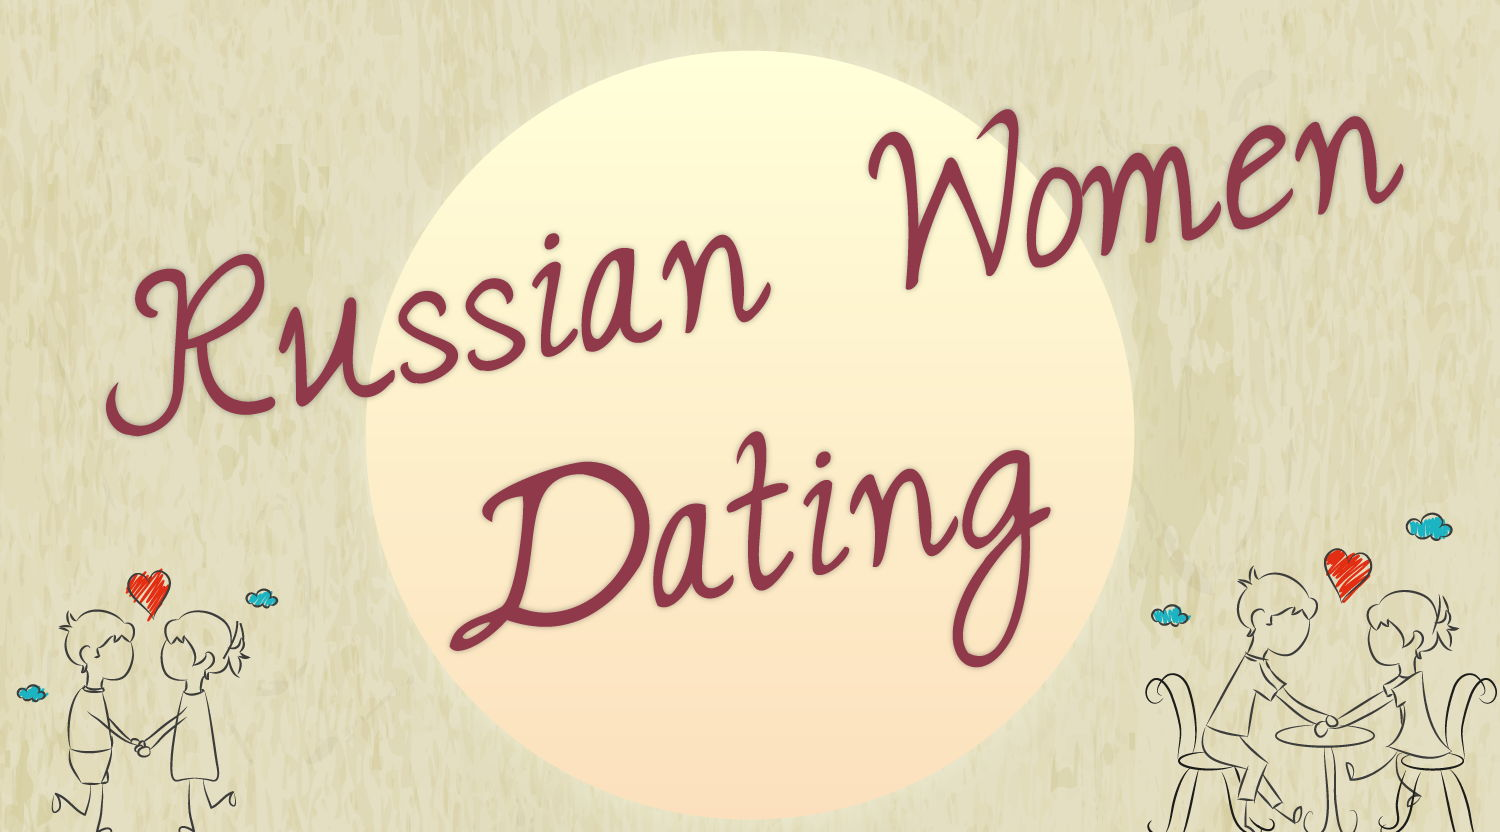 Russian women dating (Infographic)